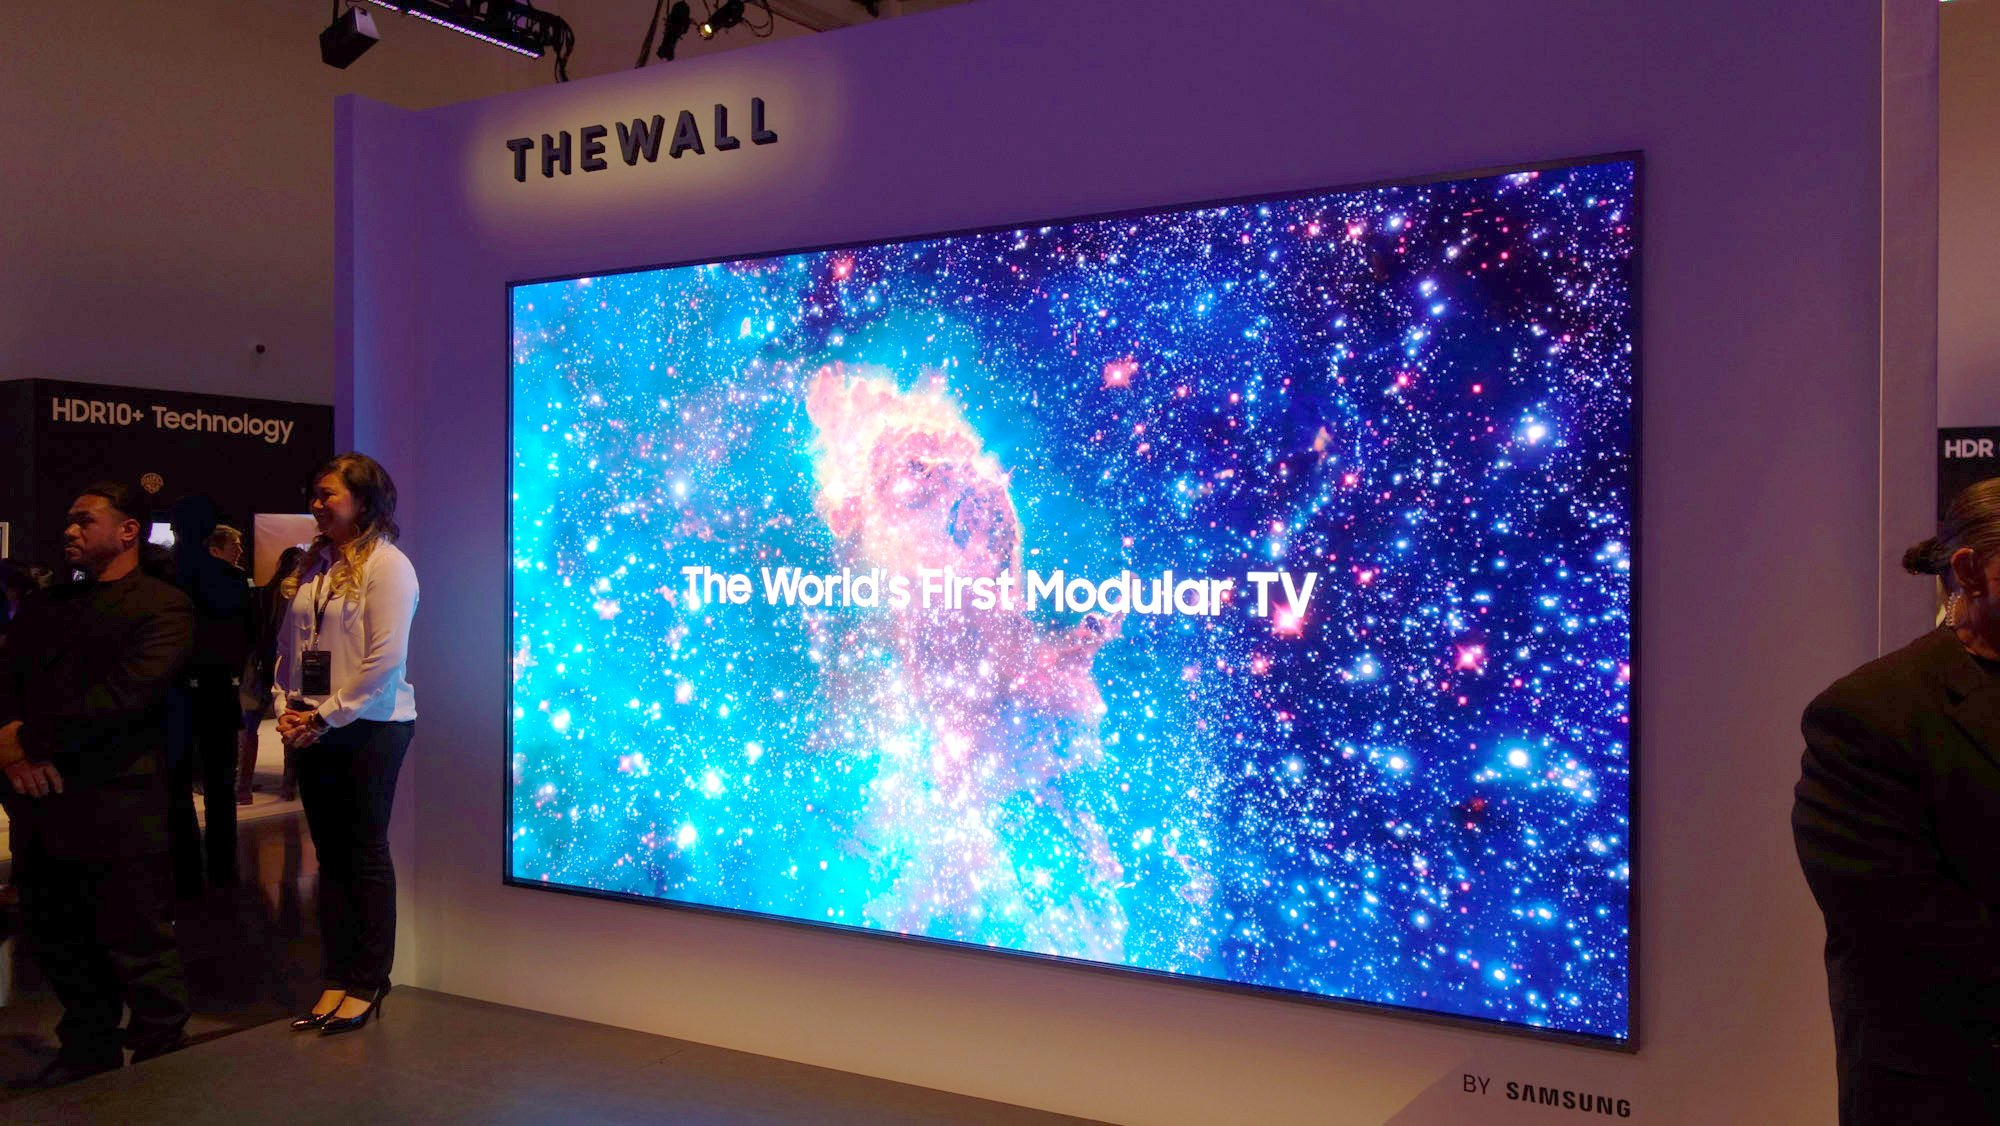 Samsung The Wall: Samsung's 146in modular TV now has an even larger